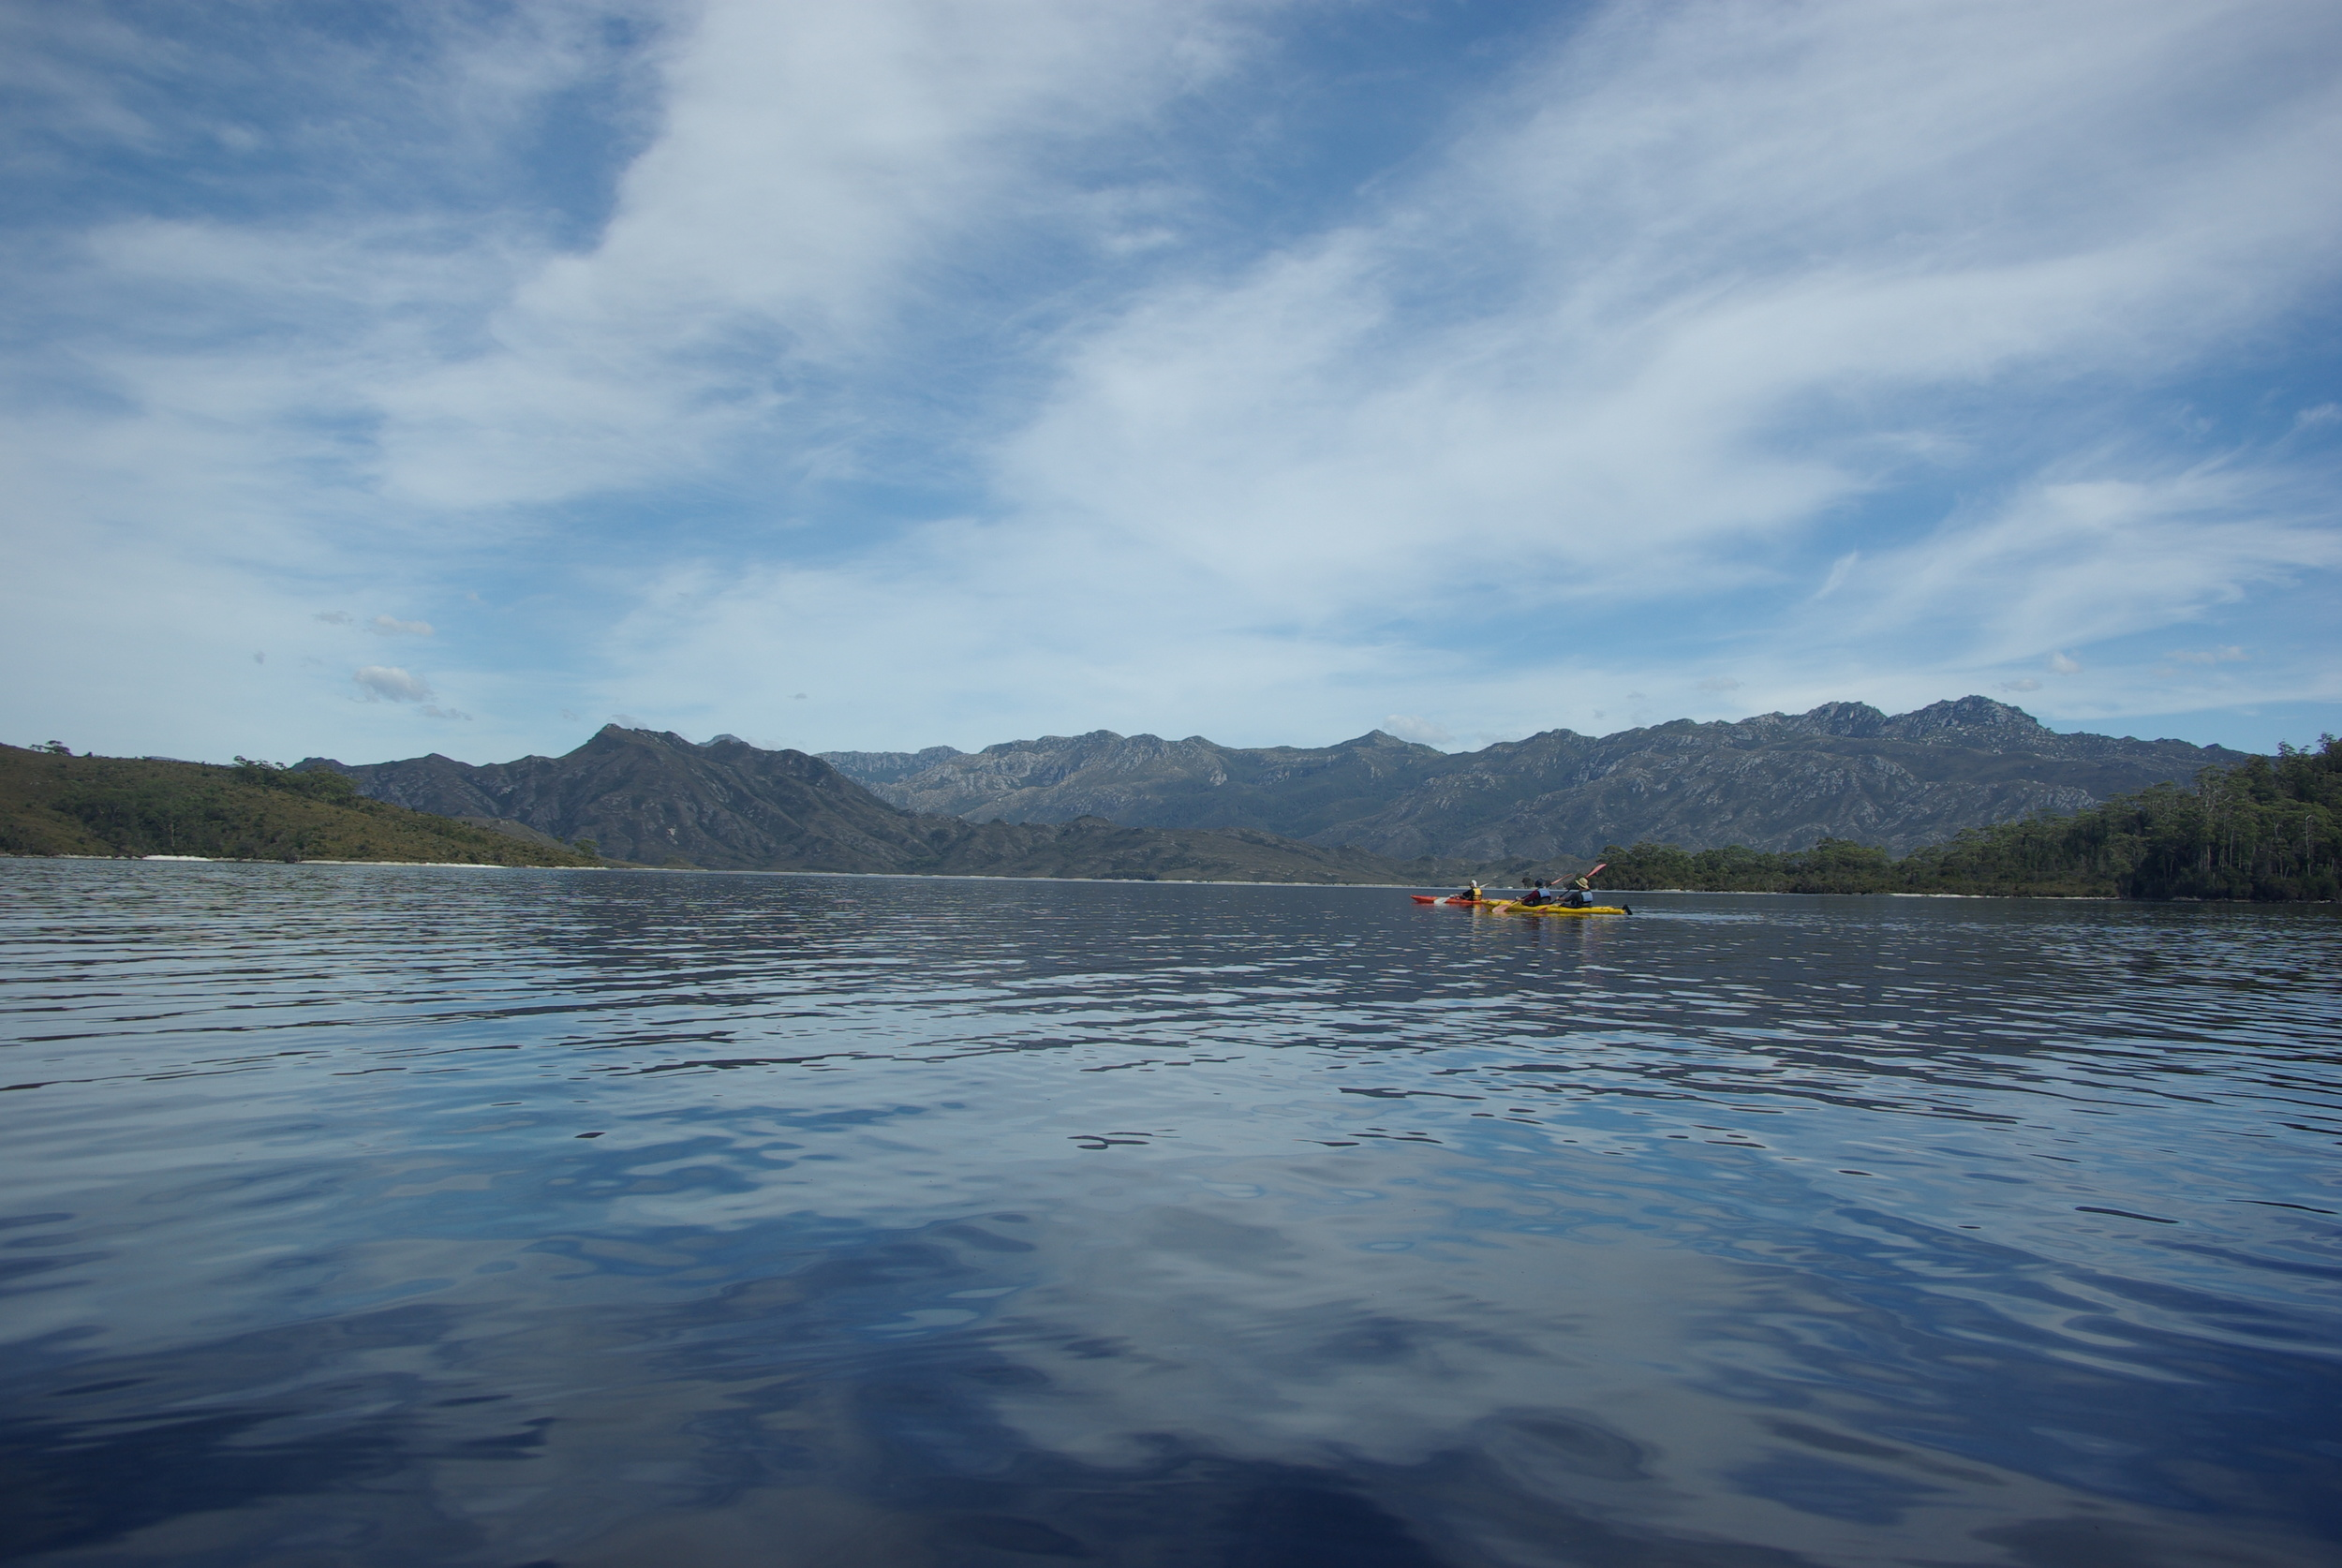 Kayaking on Lake Pedder